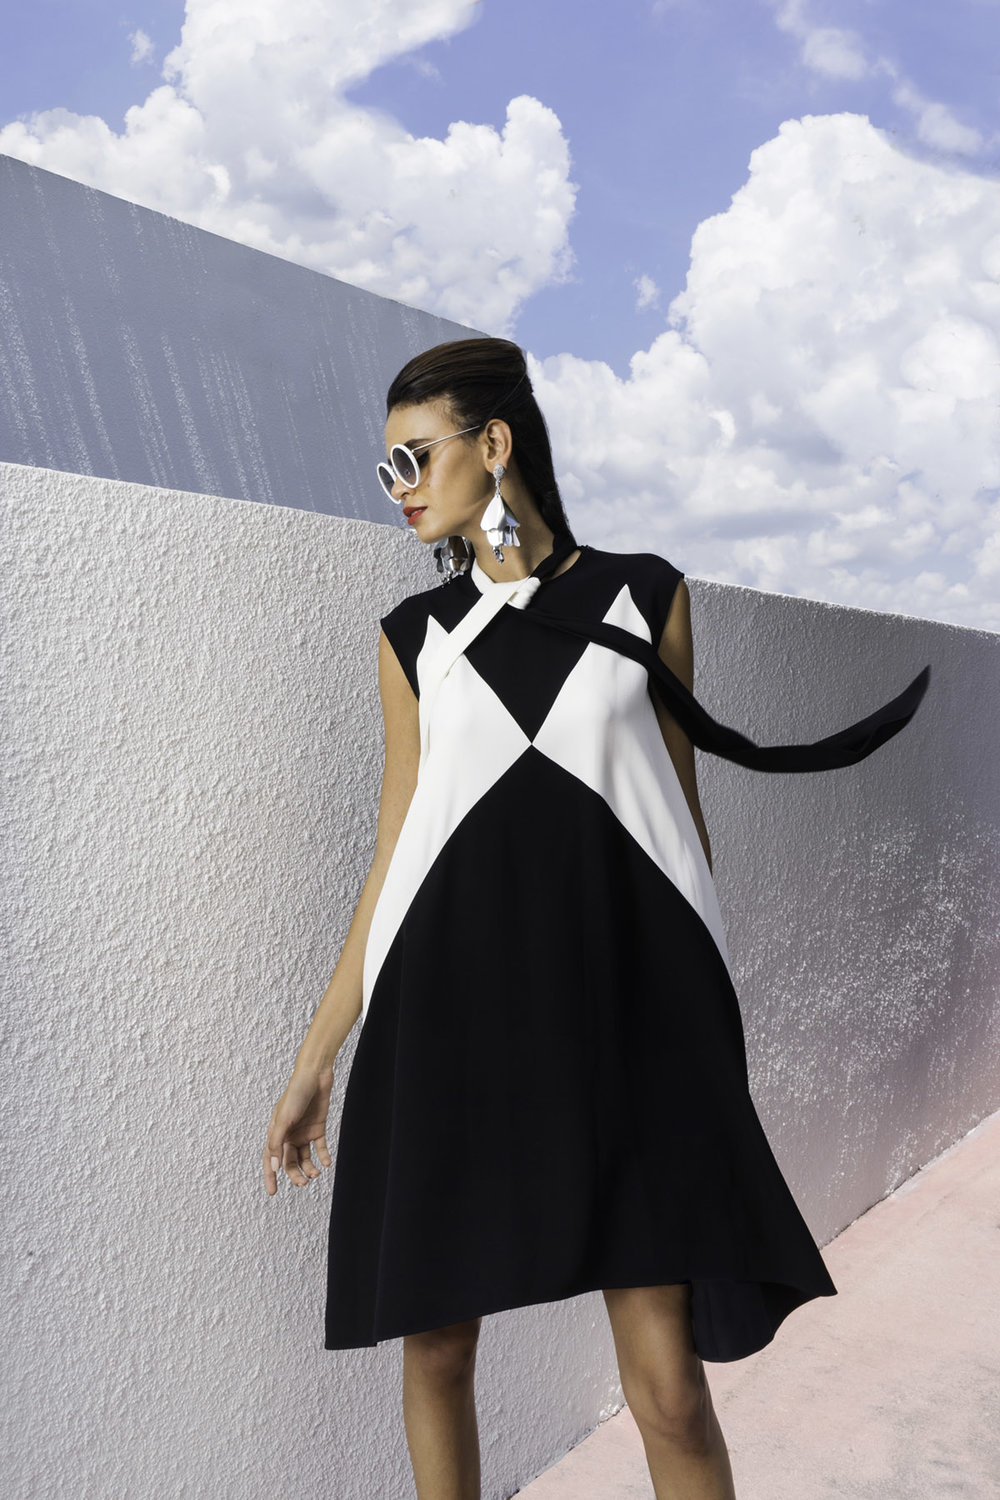 Earrings, Oscar De La Renta, Sunglasses, Linda Farrow, Dress, Givenchy